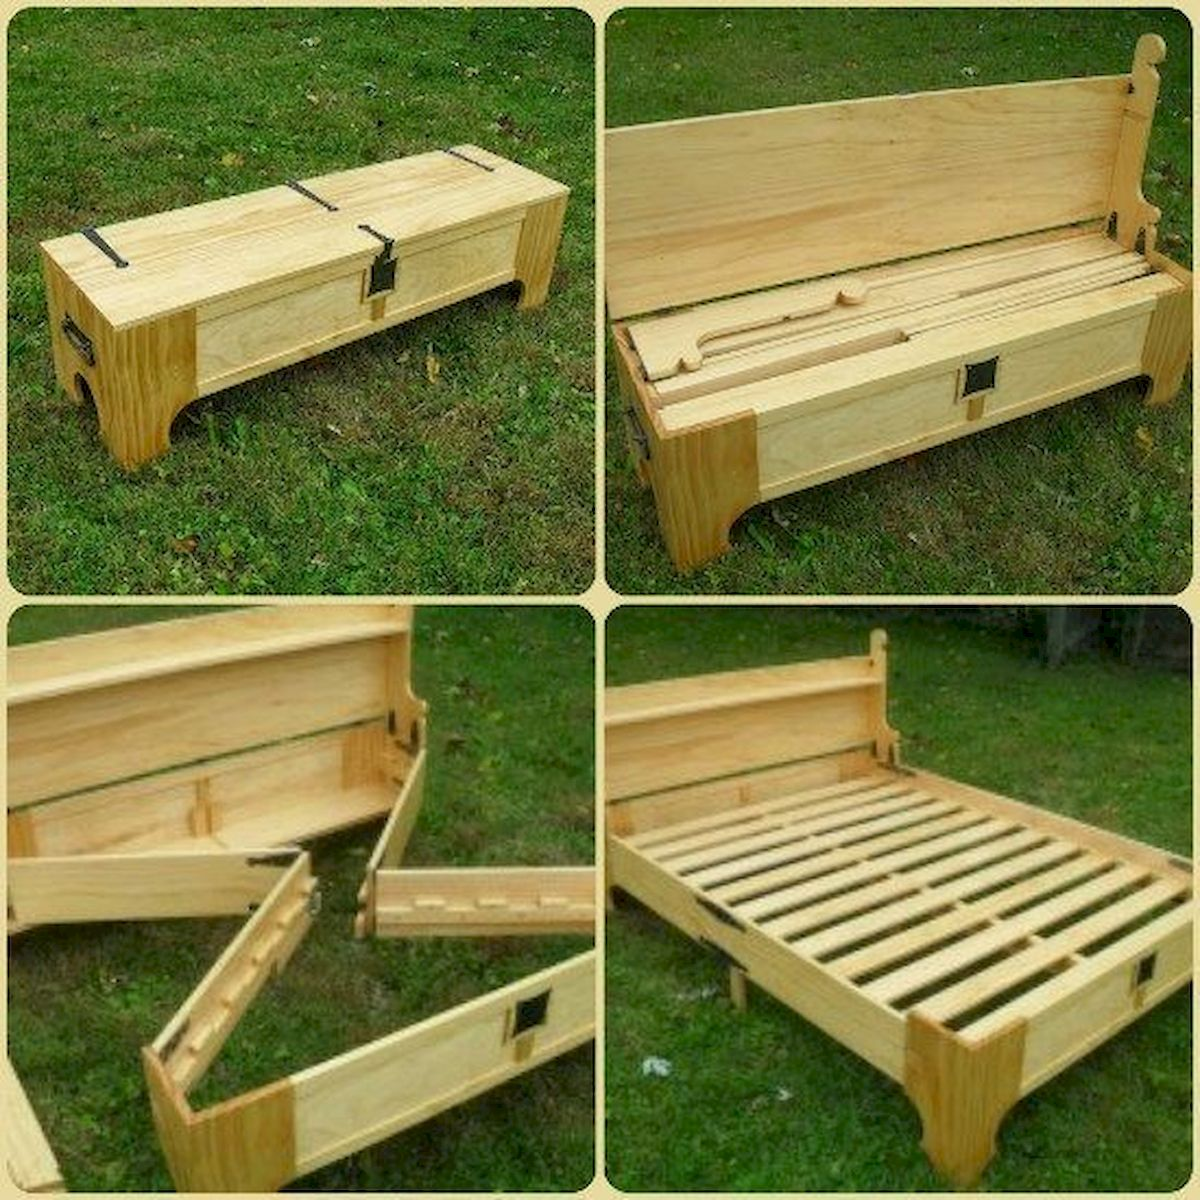 60 Easy DIY Wood Furniture Projects Ideas (26)